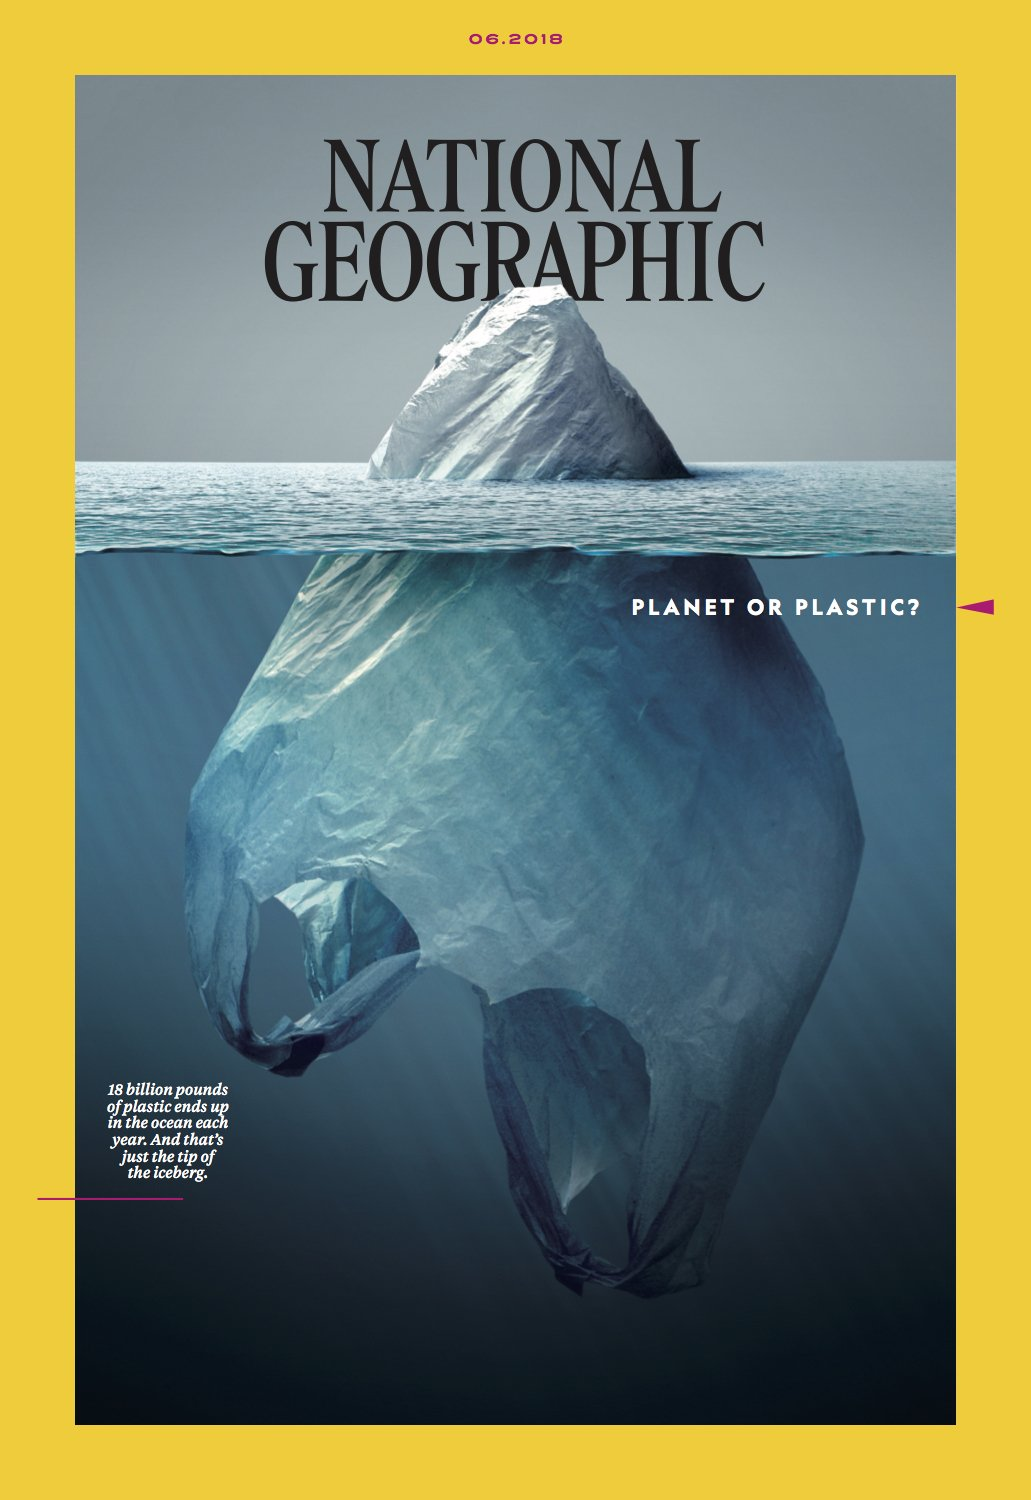 National Geographic Comes Up With An Iconic Cover For Its 'Planet Or Plastic' Campaign